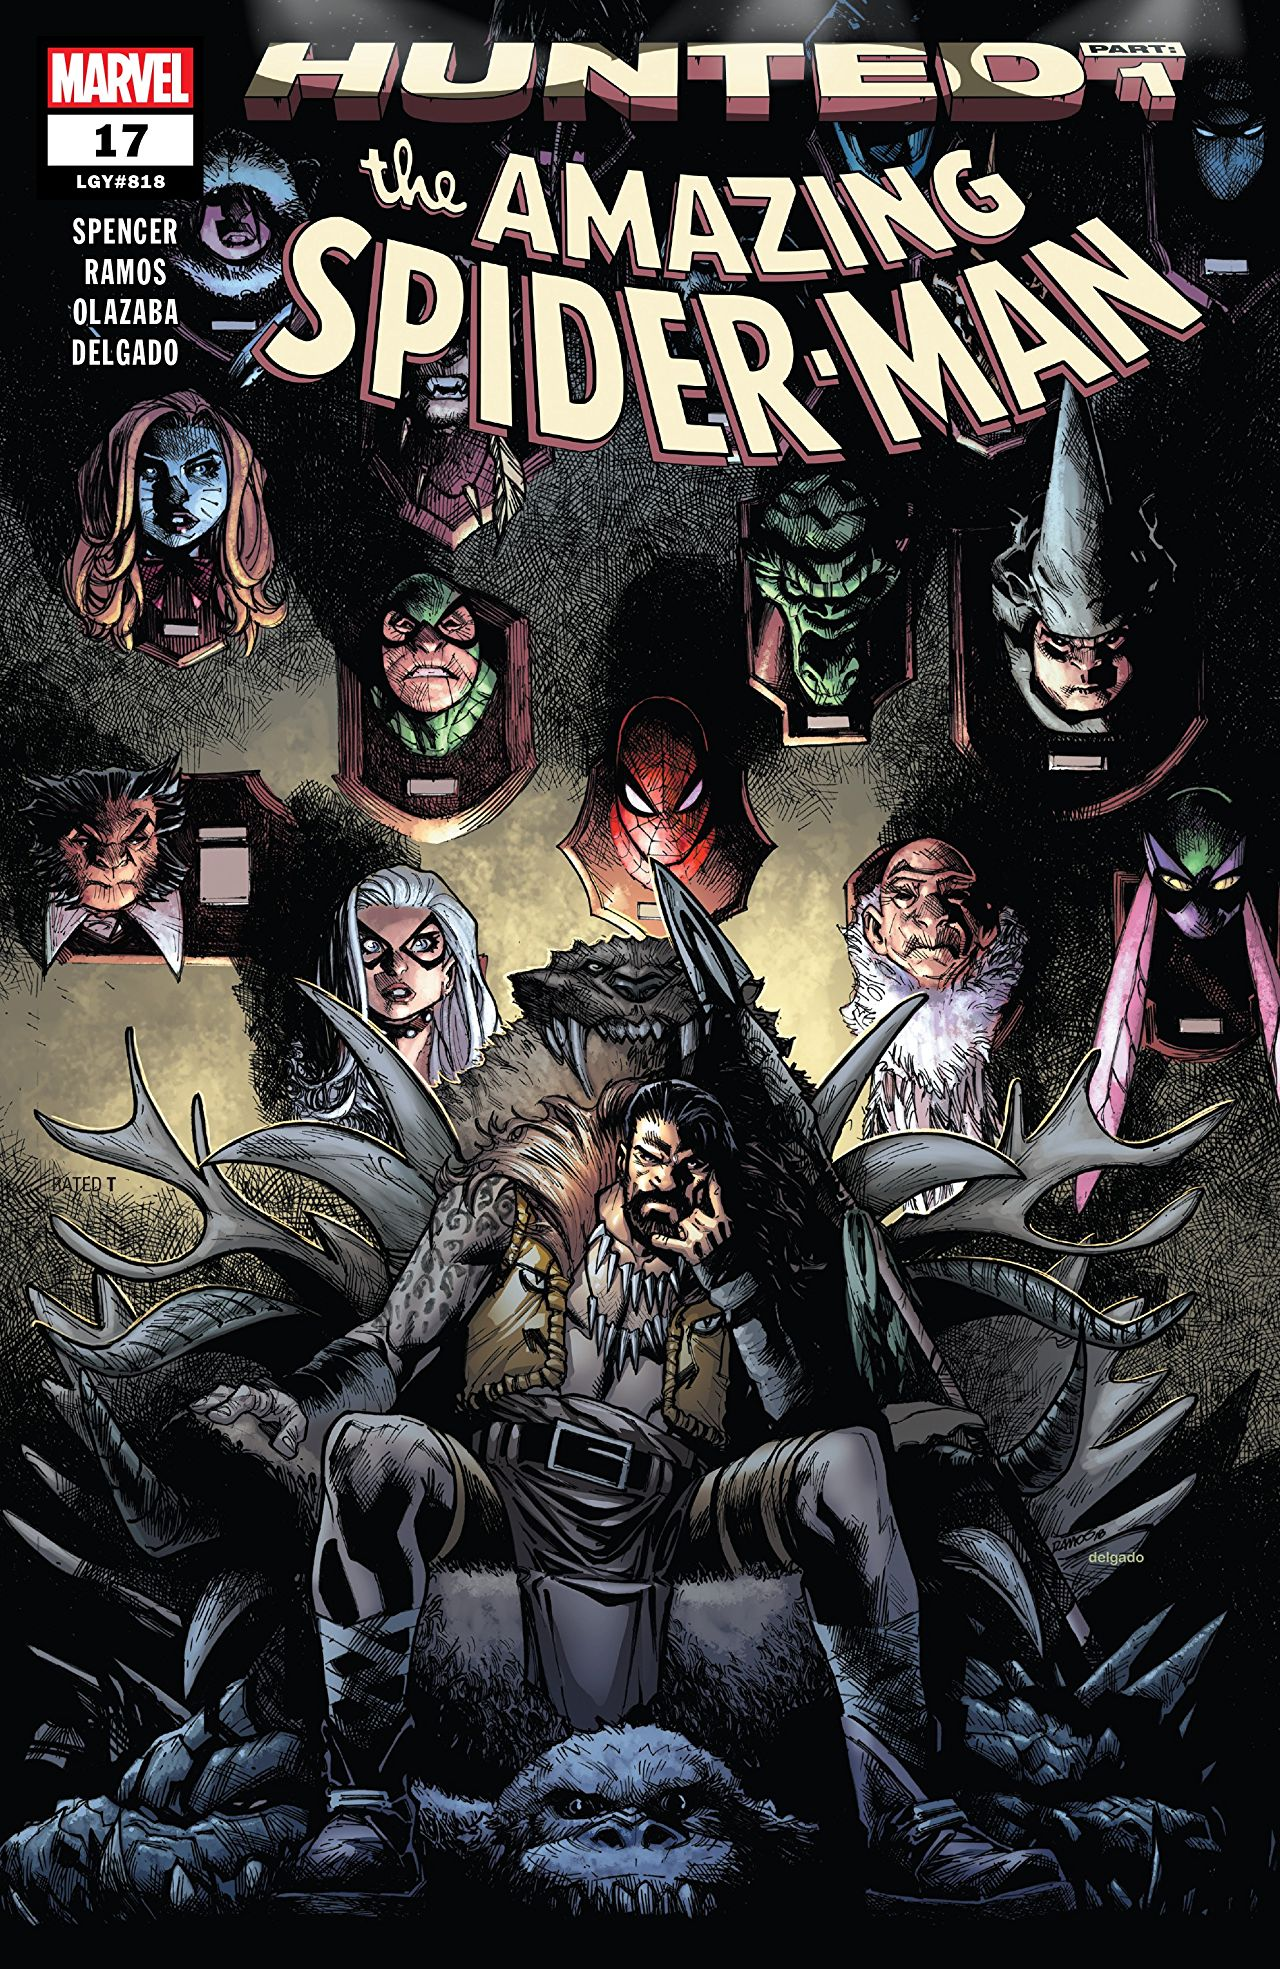 The Amazing Spider-Man 17 - HUNTED PART 1